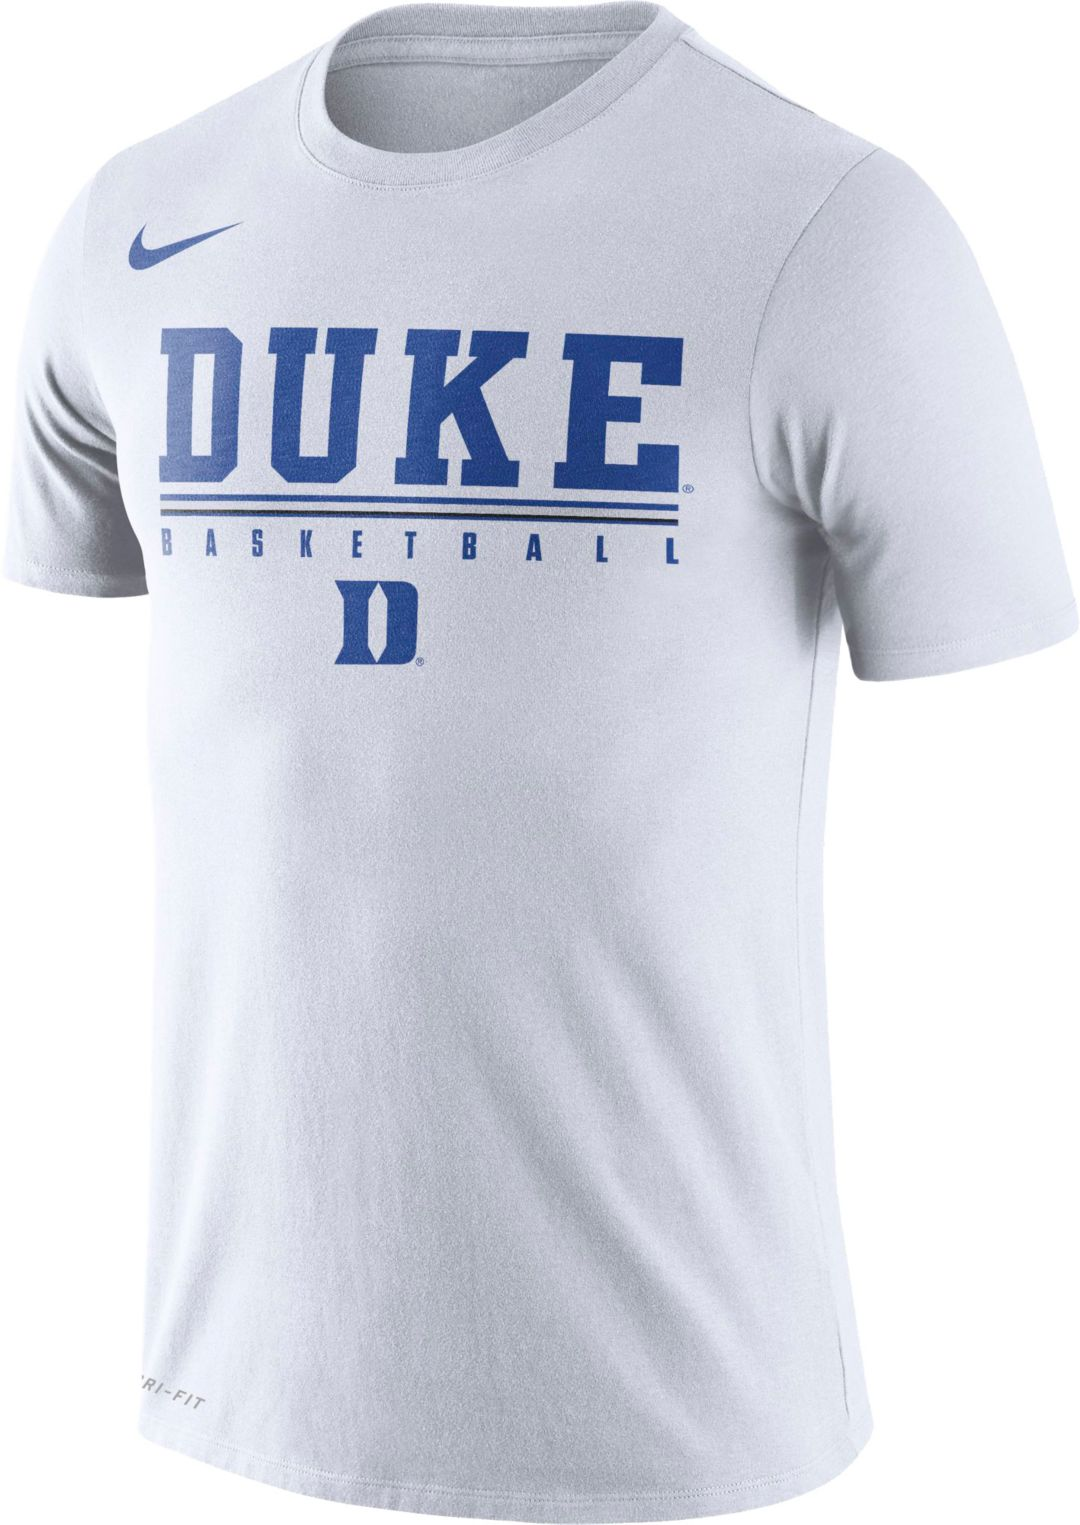 super popular 3cd21 f5019 Nike Men's Duke Blue Devils Dri-FIT Practice Basketball White T-Shirt